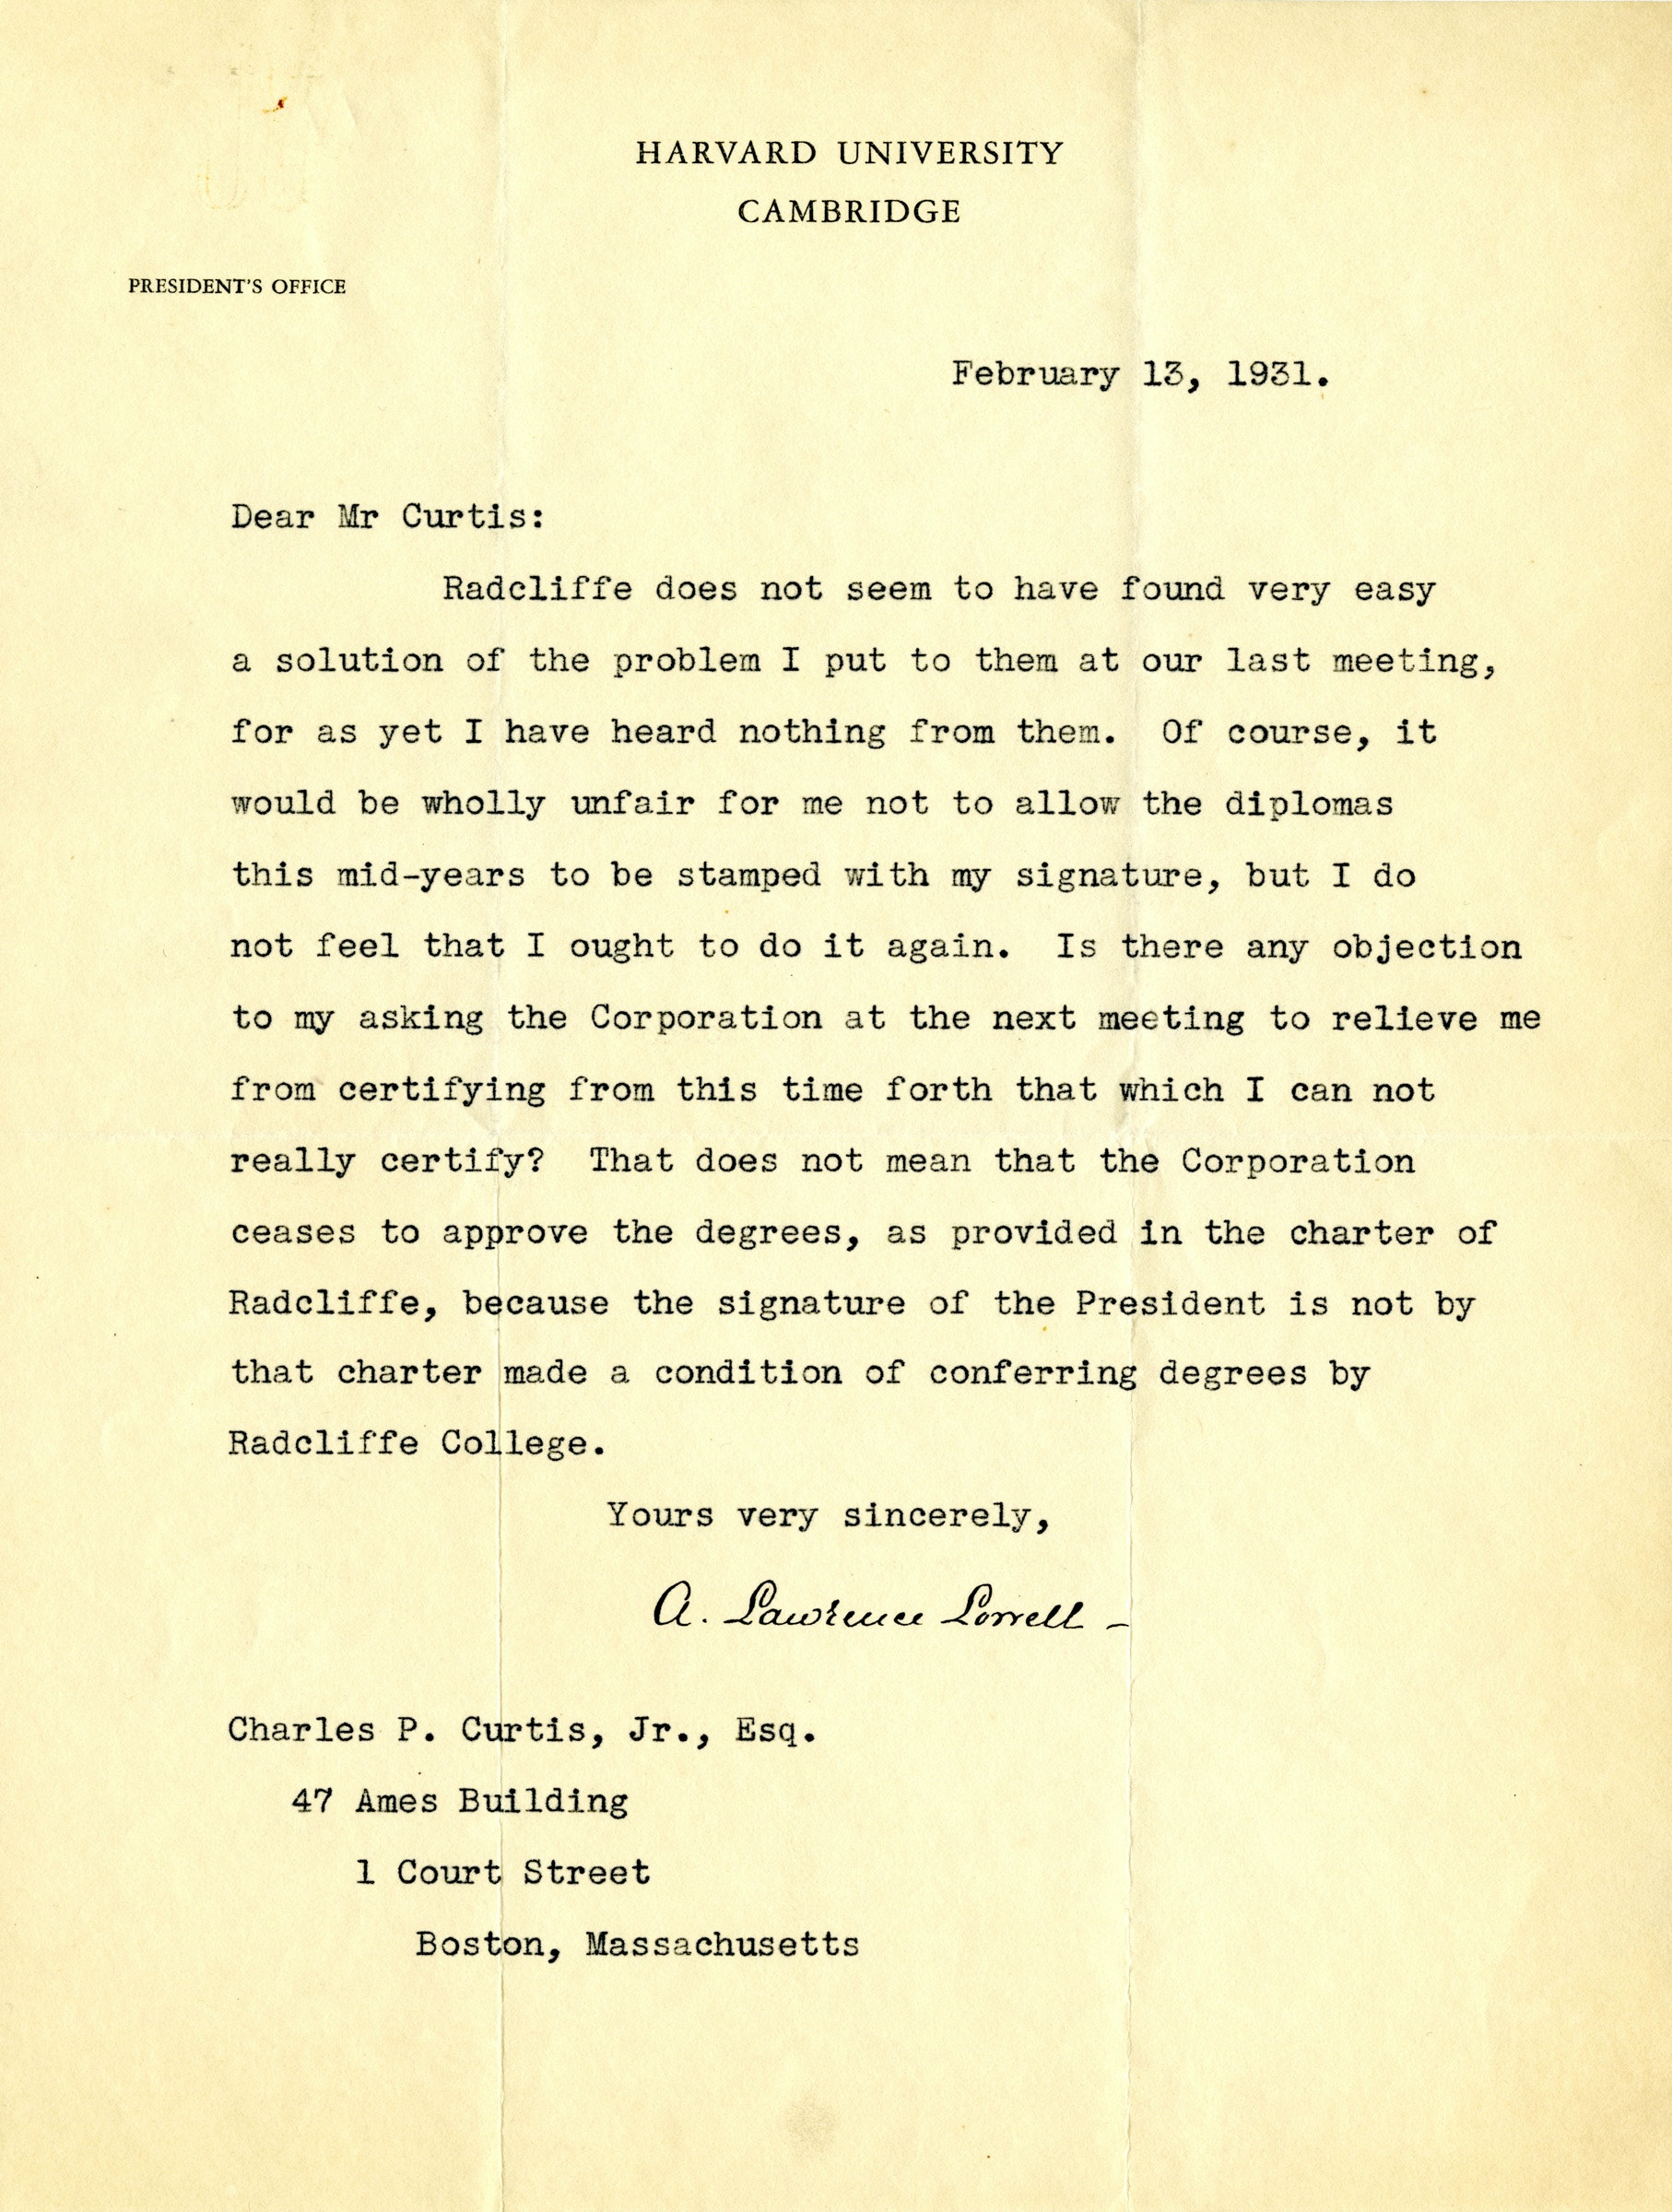 Letter from President A. Lawrence Lowell